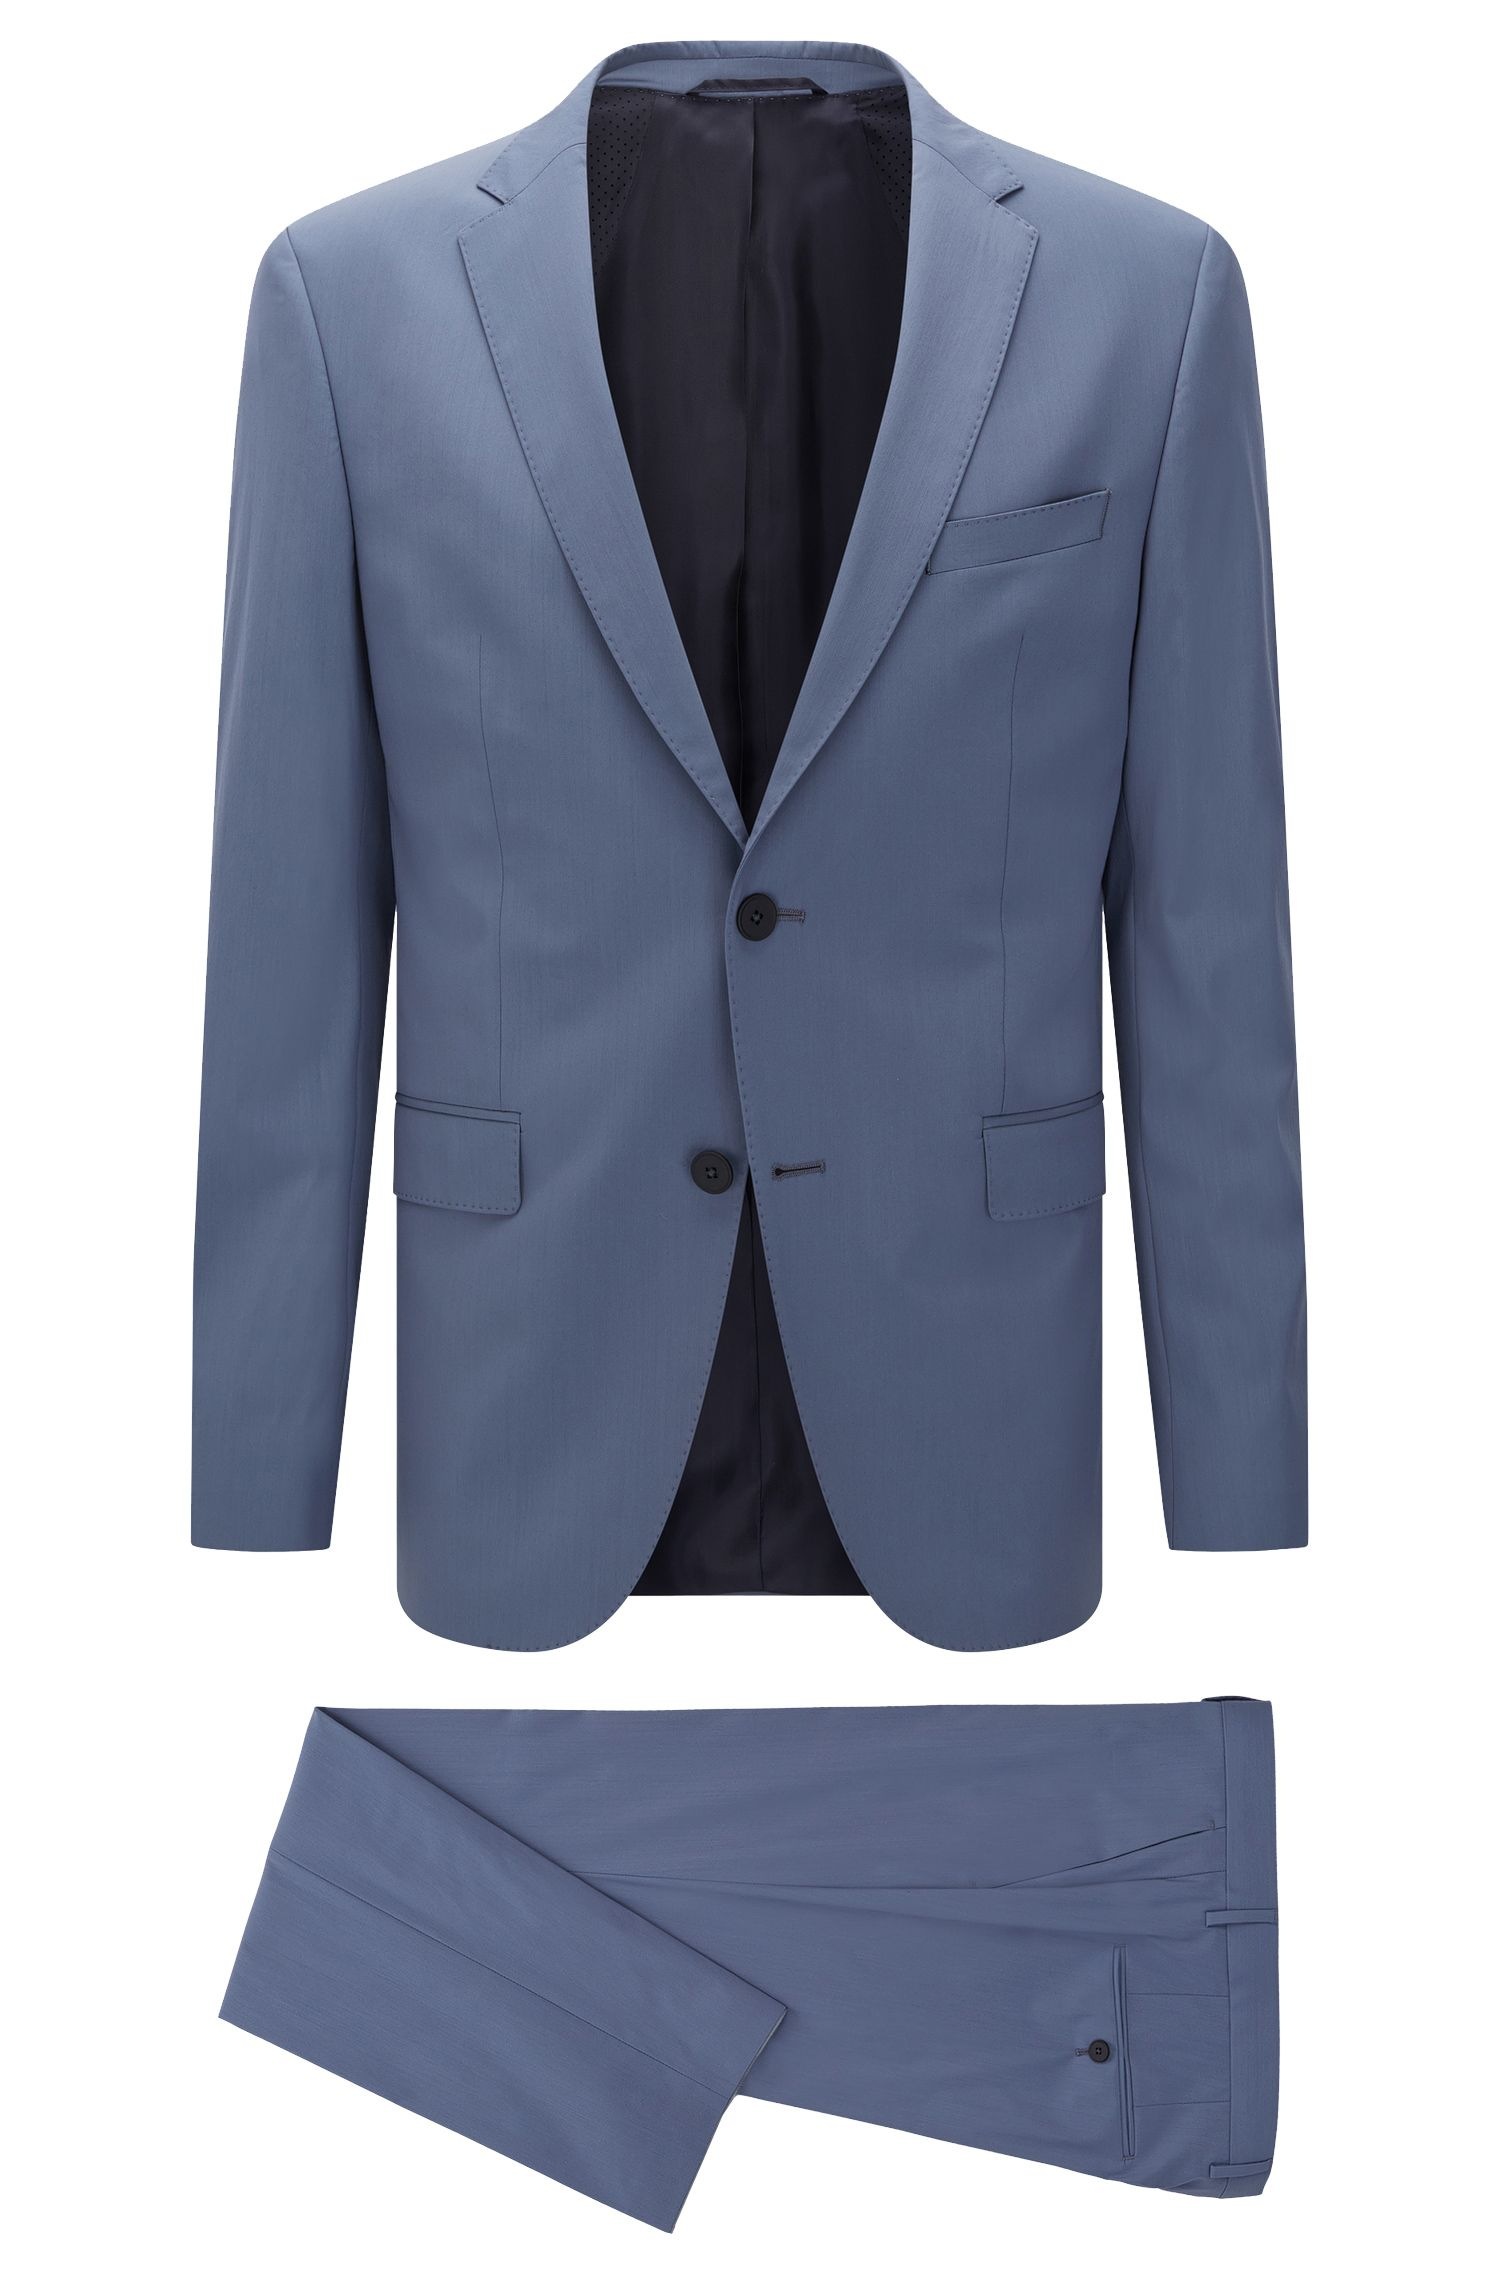 'Nestro/Byte' | Slim Fit, Stretch Virgin Wool Blend Travel Suit